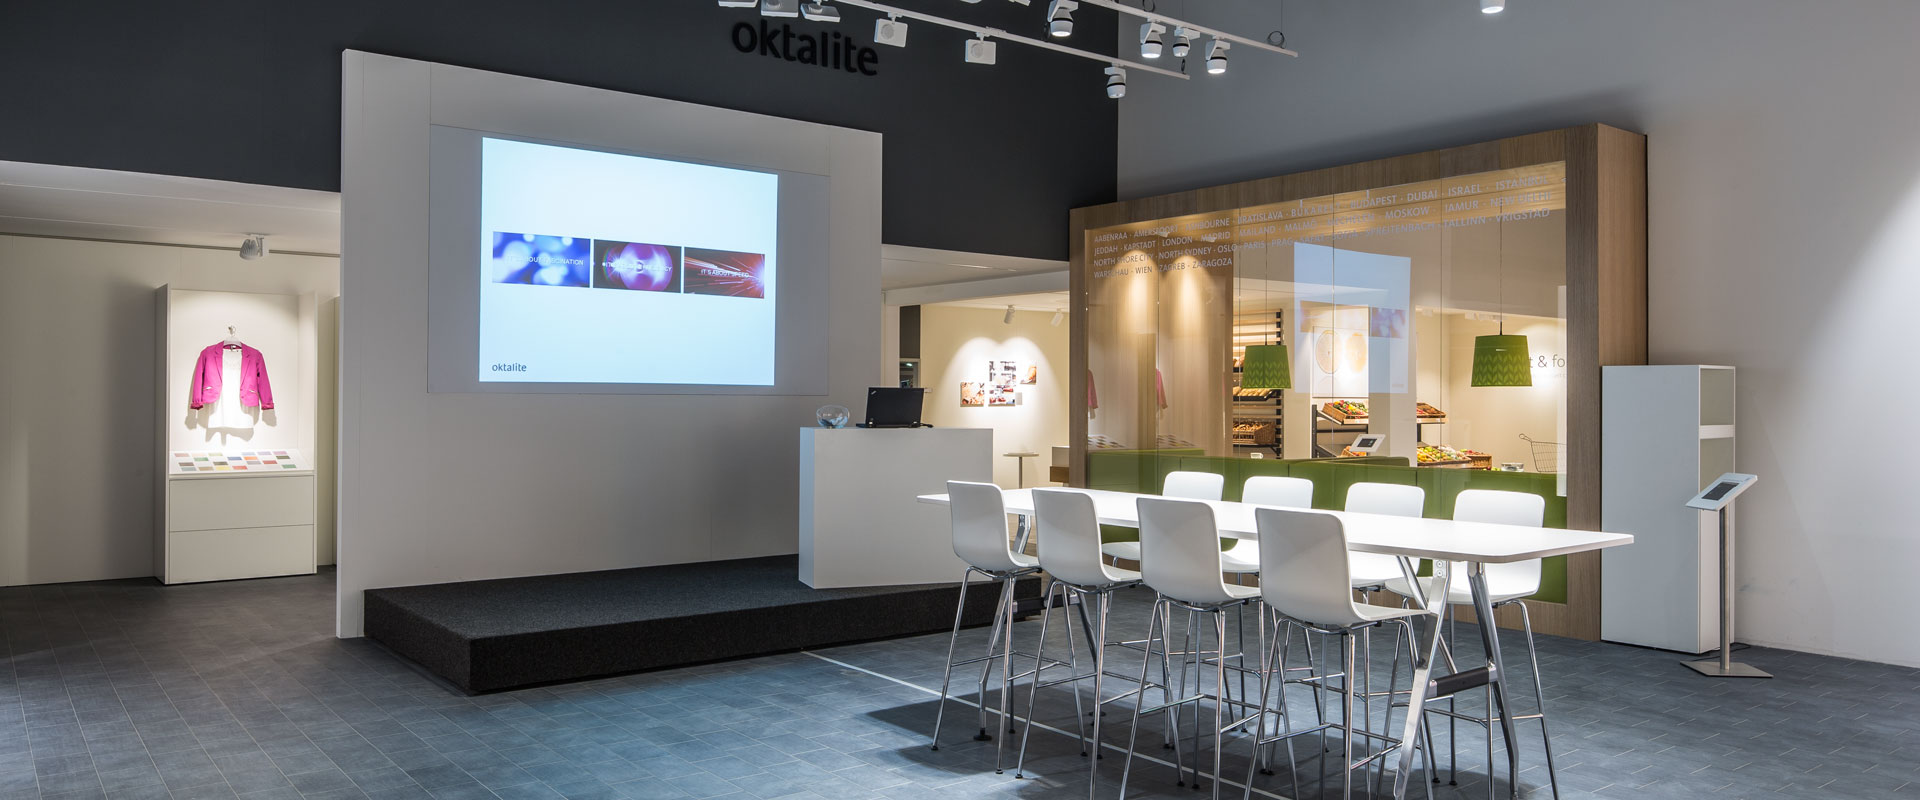 Oktalite Showroom